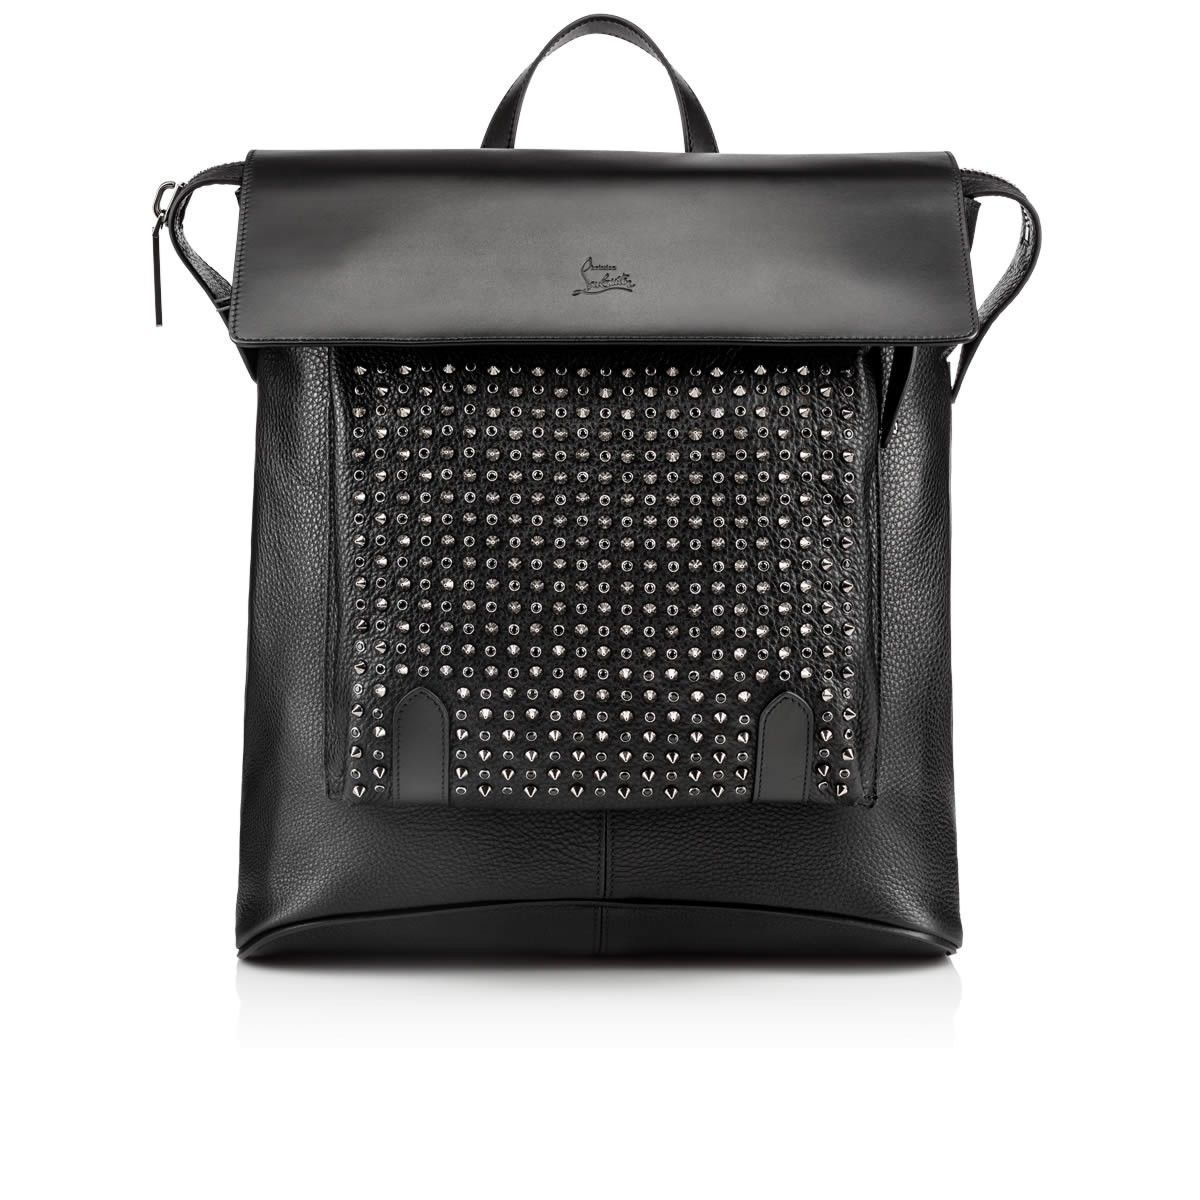 0d4c40903cf Men Bag - Syd New Strass Backpack - Christian Louboutin   My Style ...